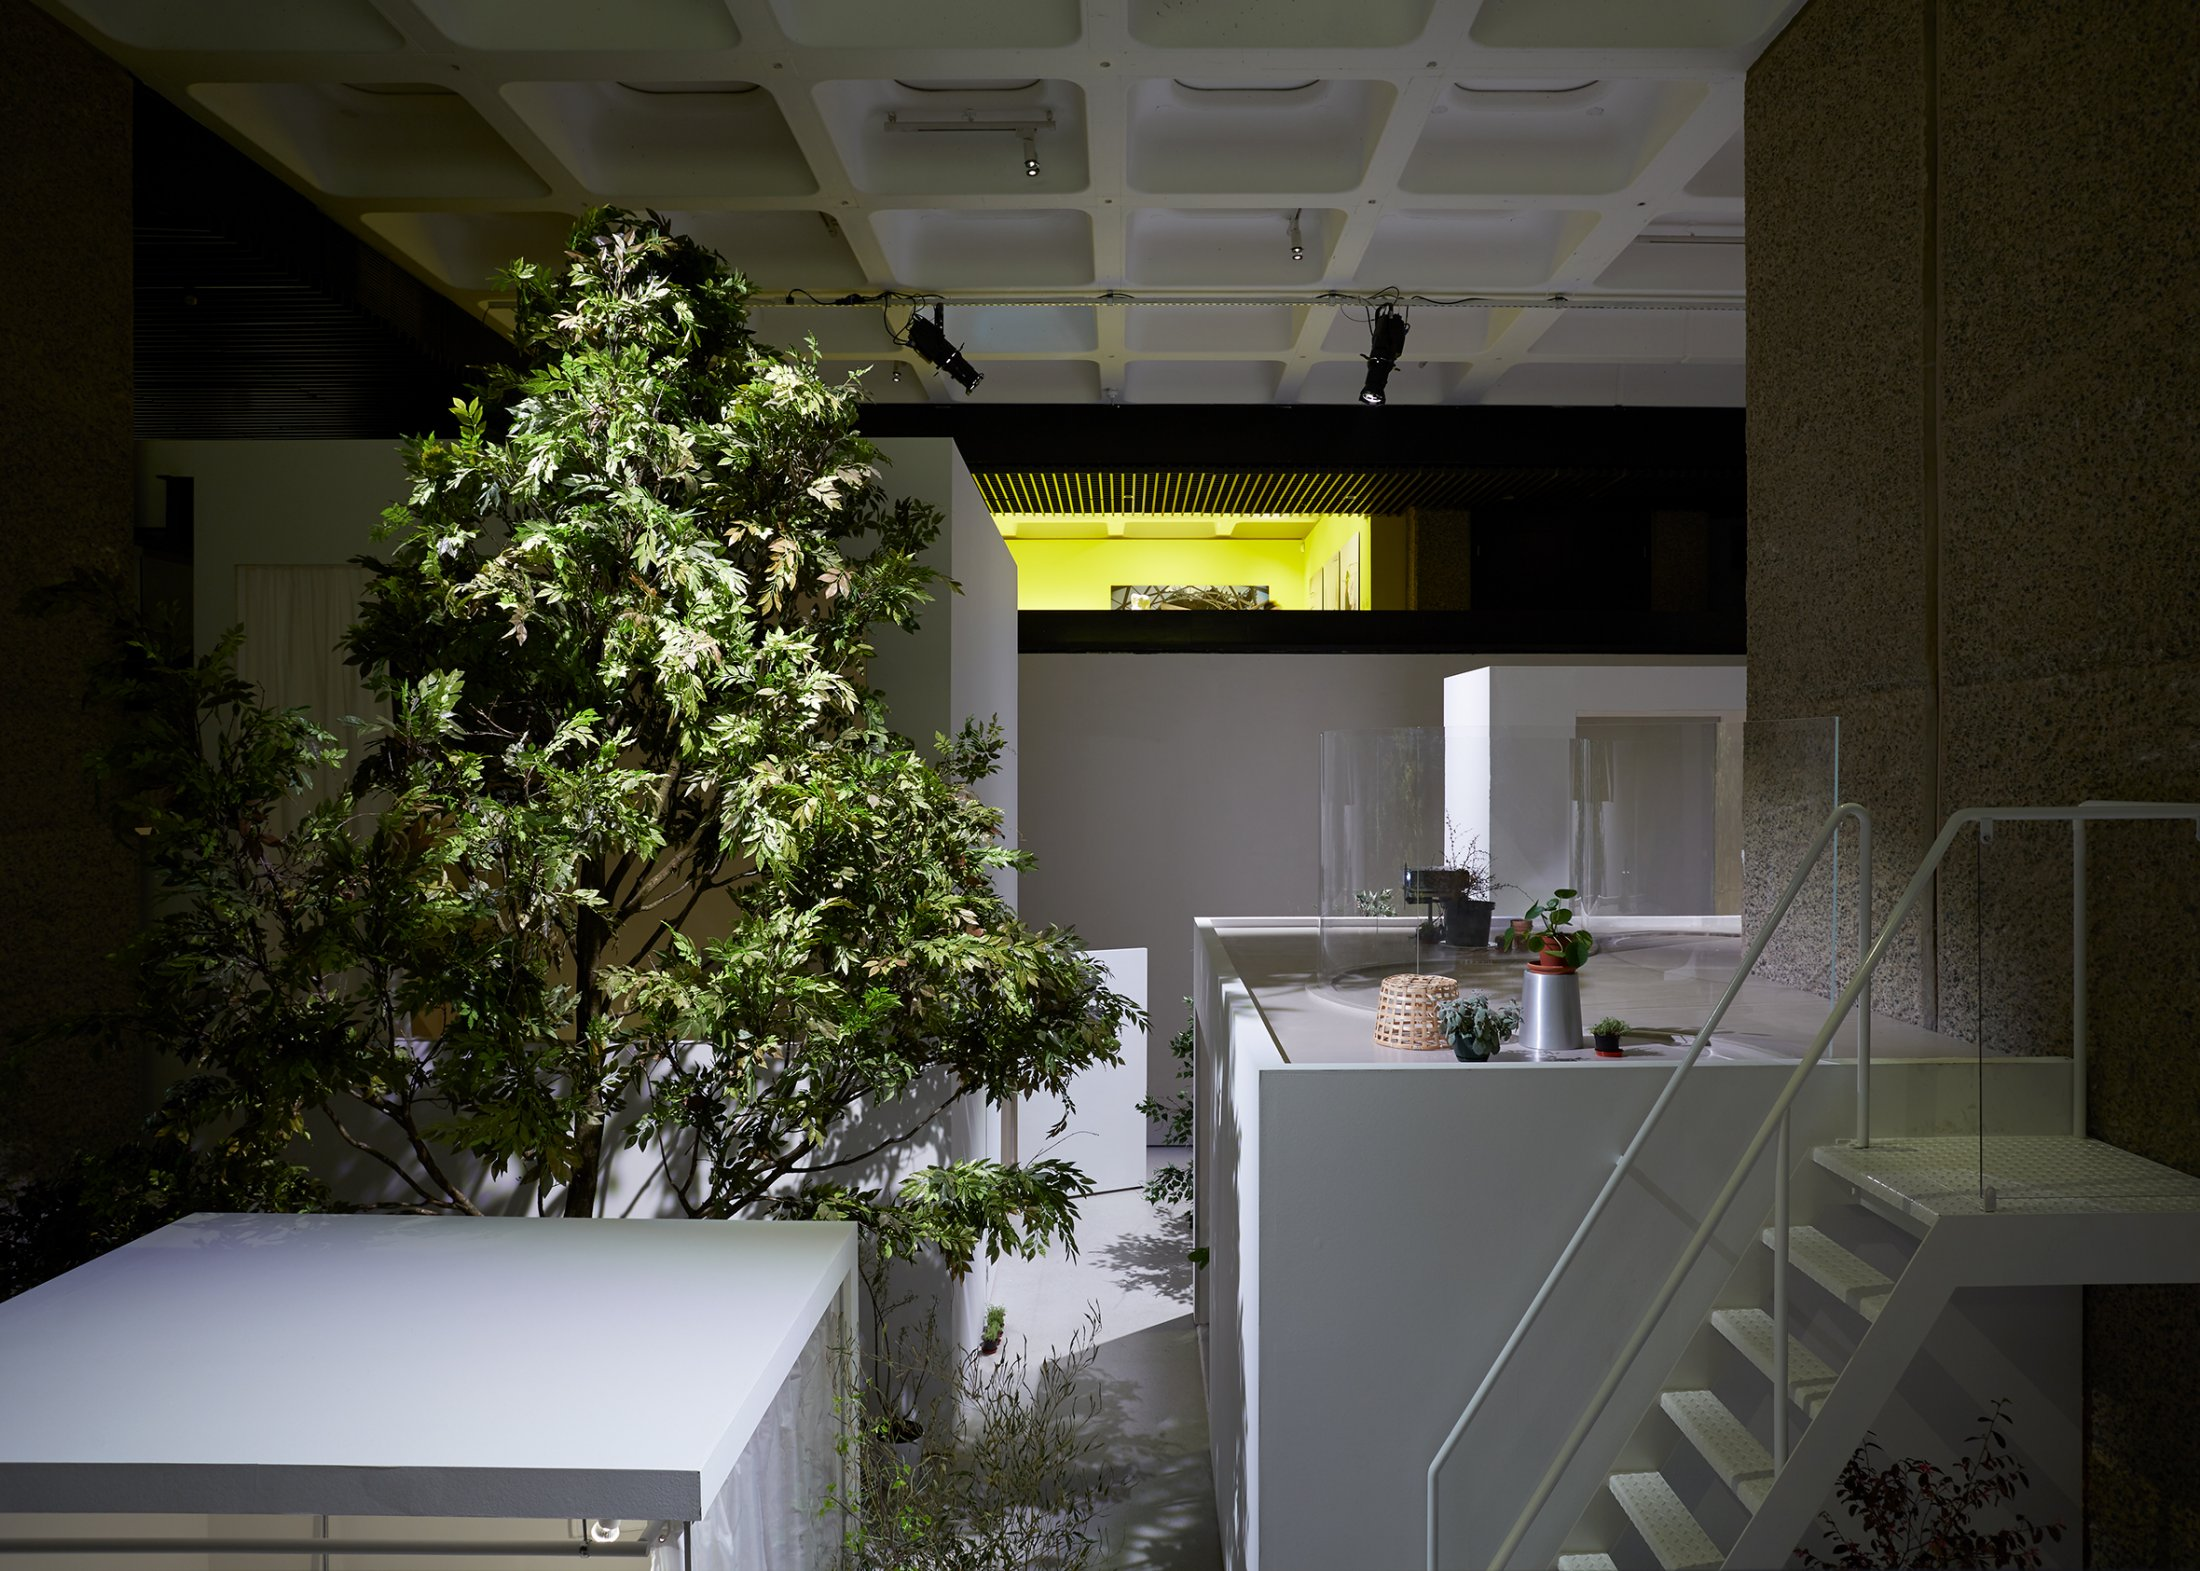 The Japanese House at the Barbican